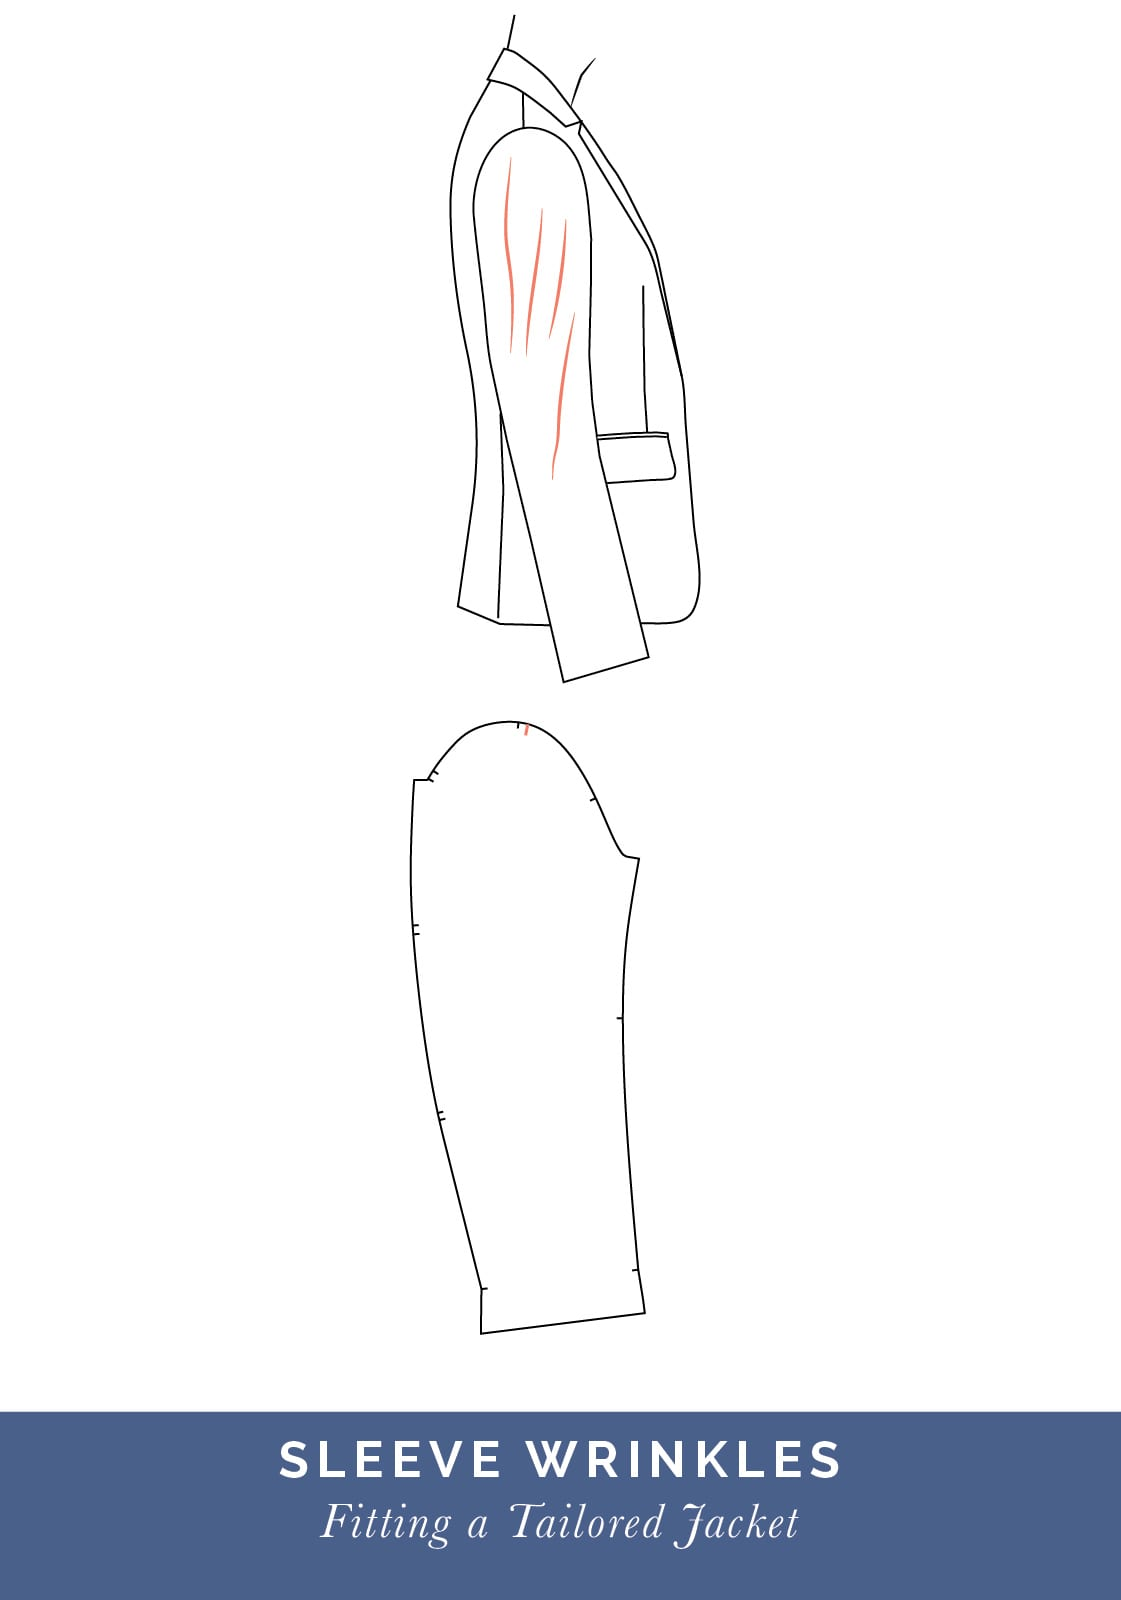 Sleeve wrinkles // How to fit a Tailored jacket or Blazer // Fit adjustment issues and fixes